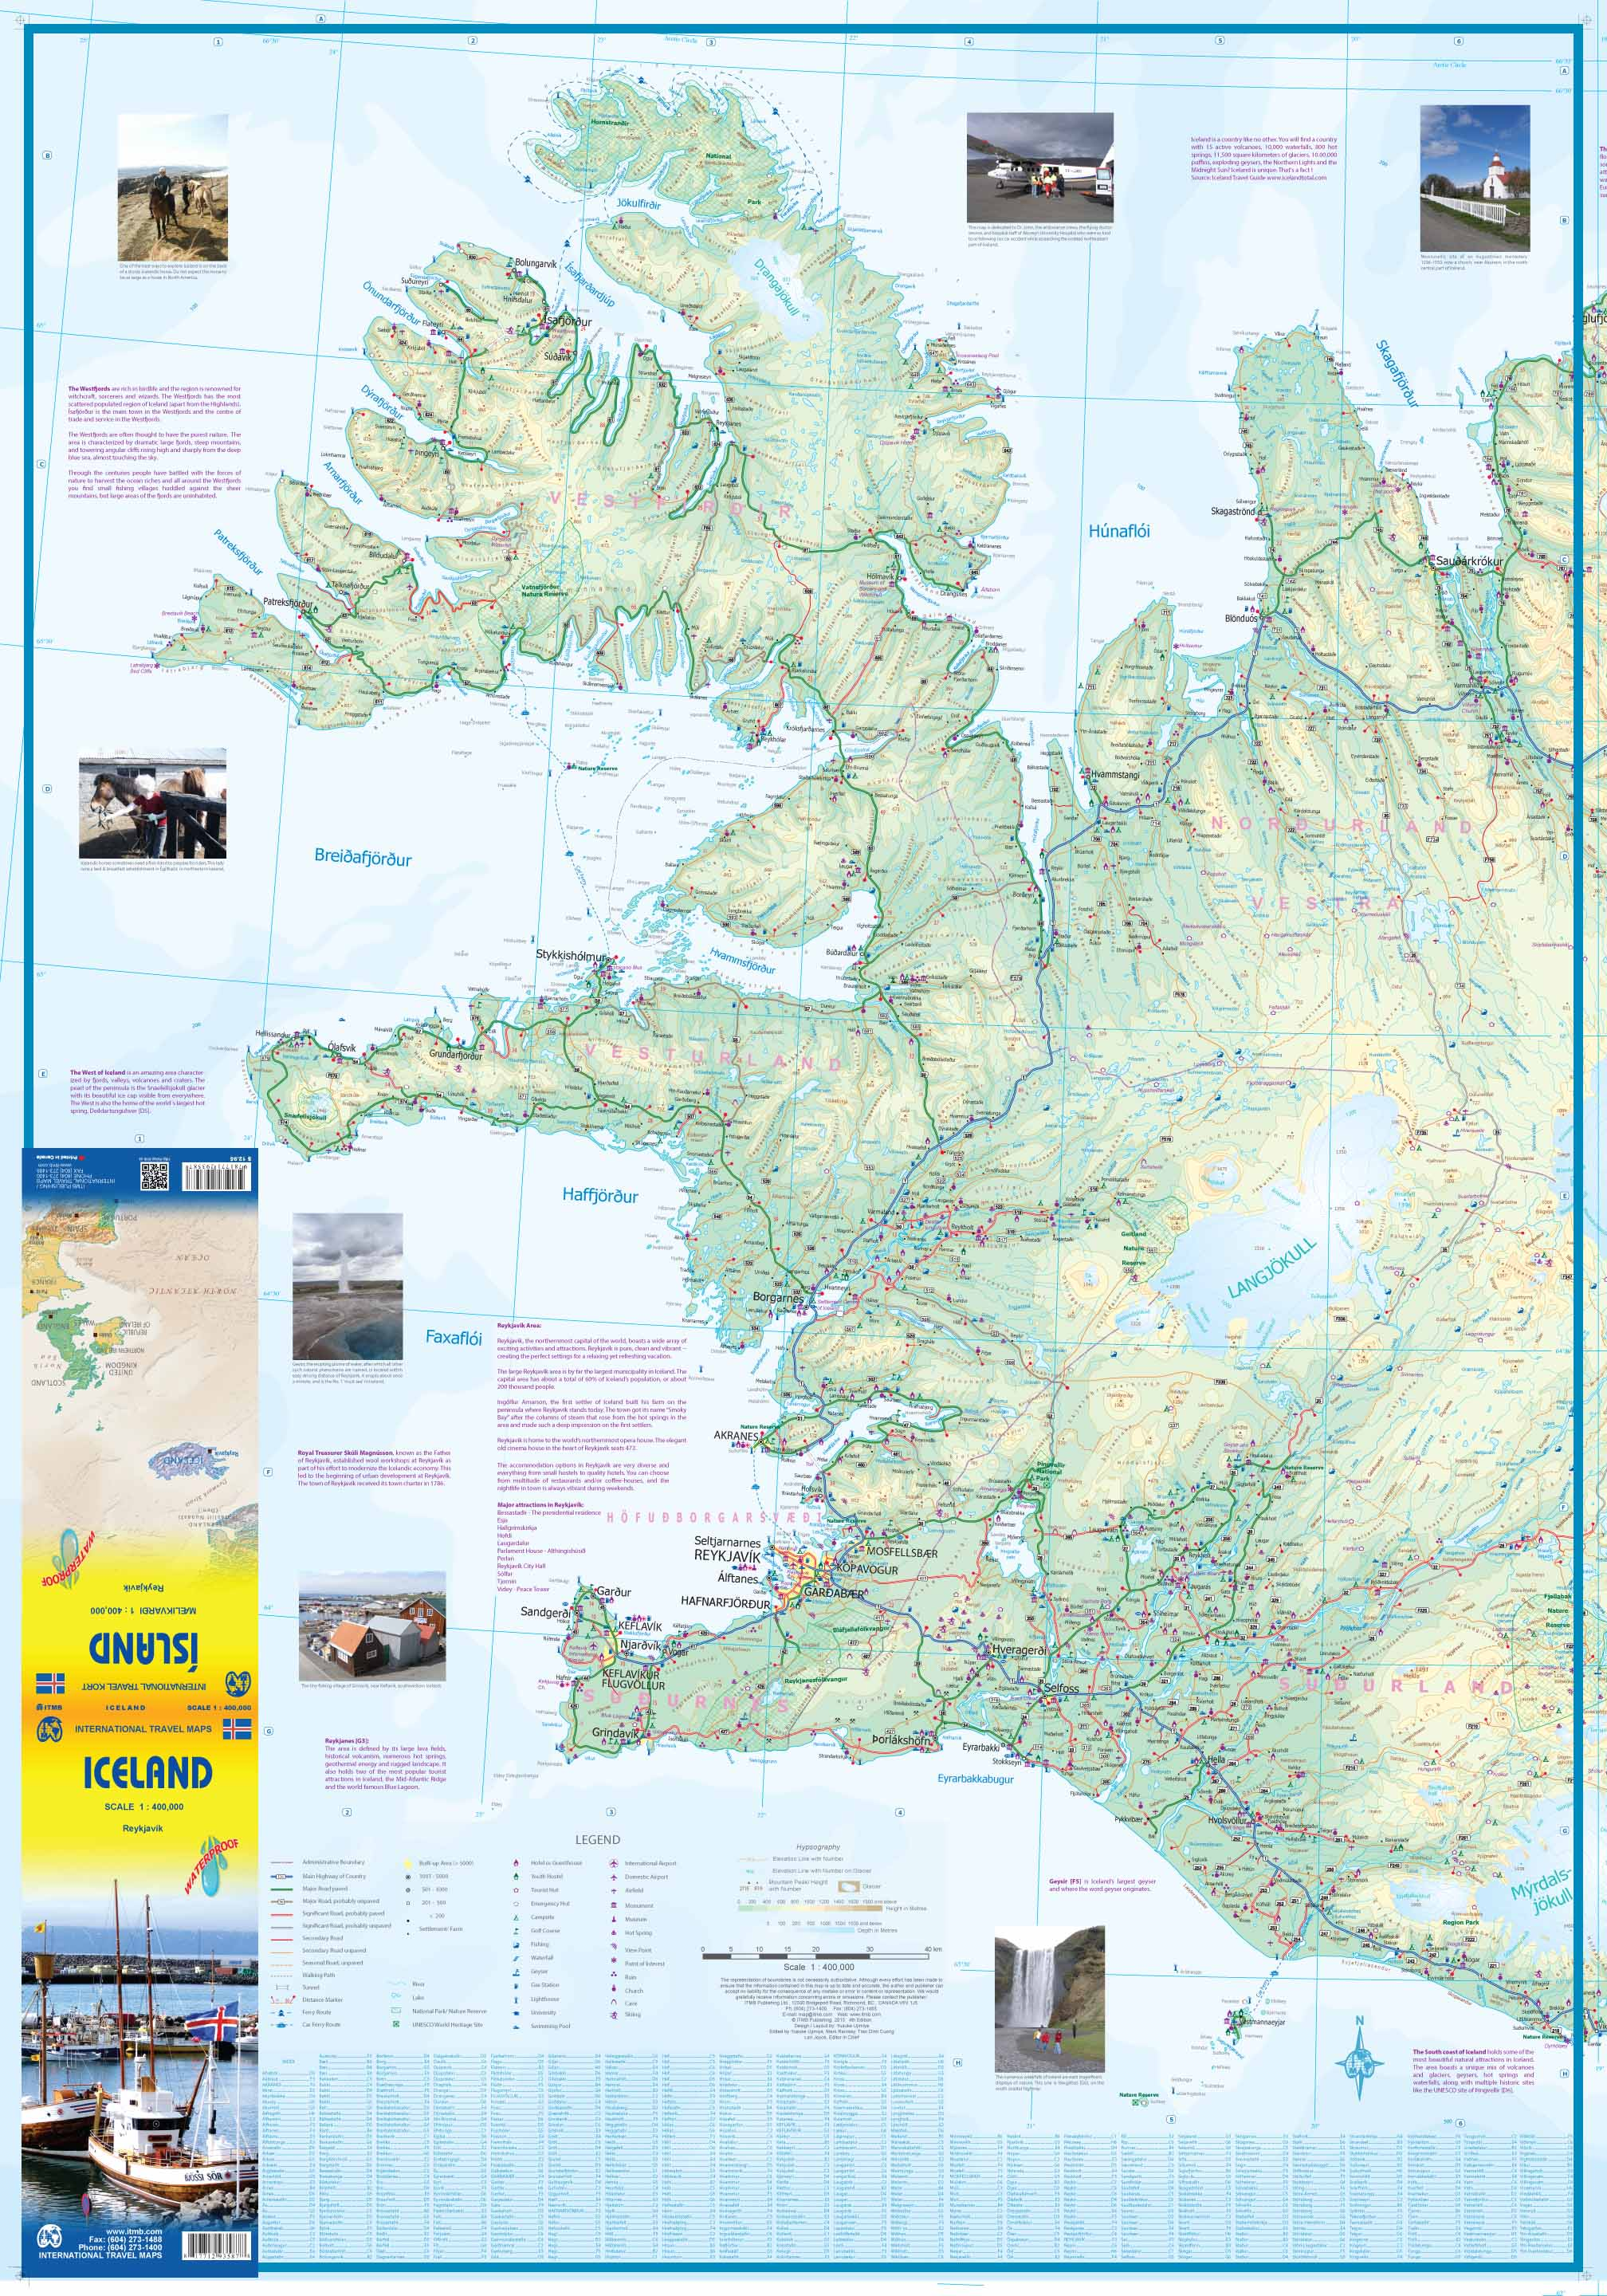 Maps for travel City Maps Road Maps Guides Globes Topographic – Iceland Travel Map